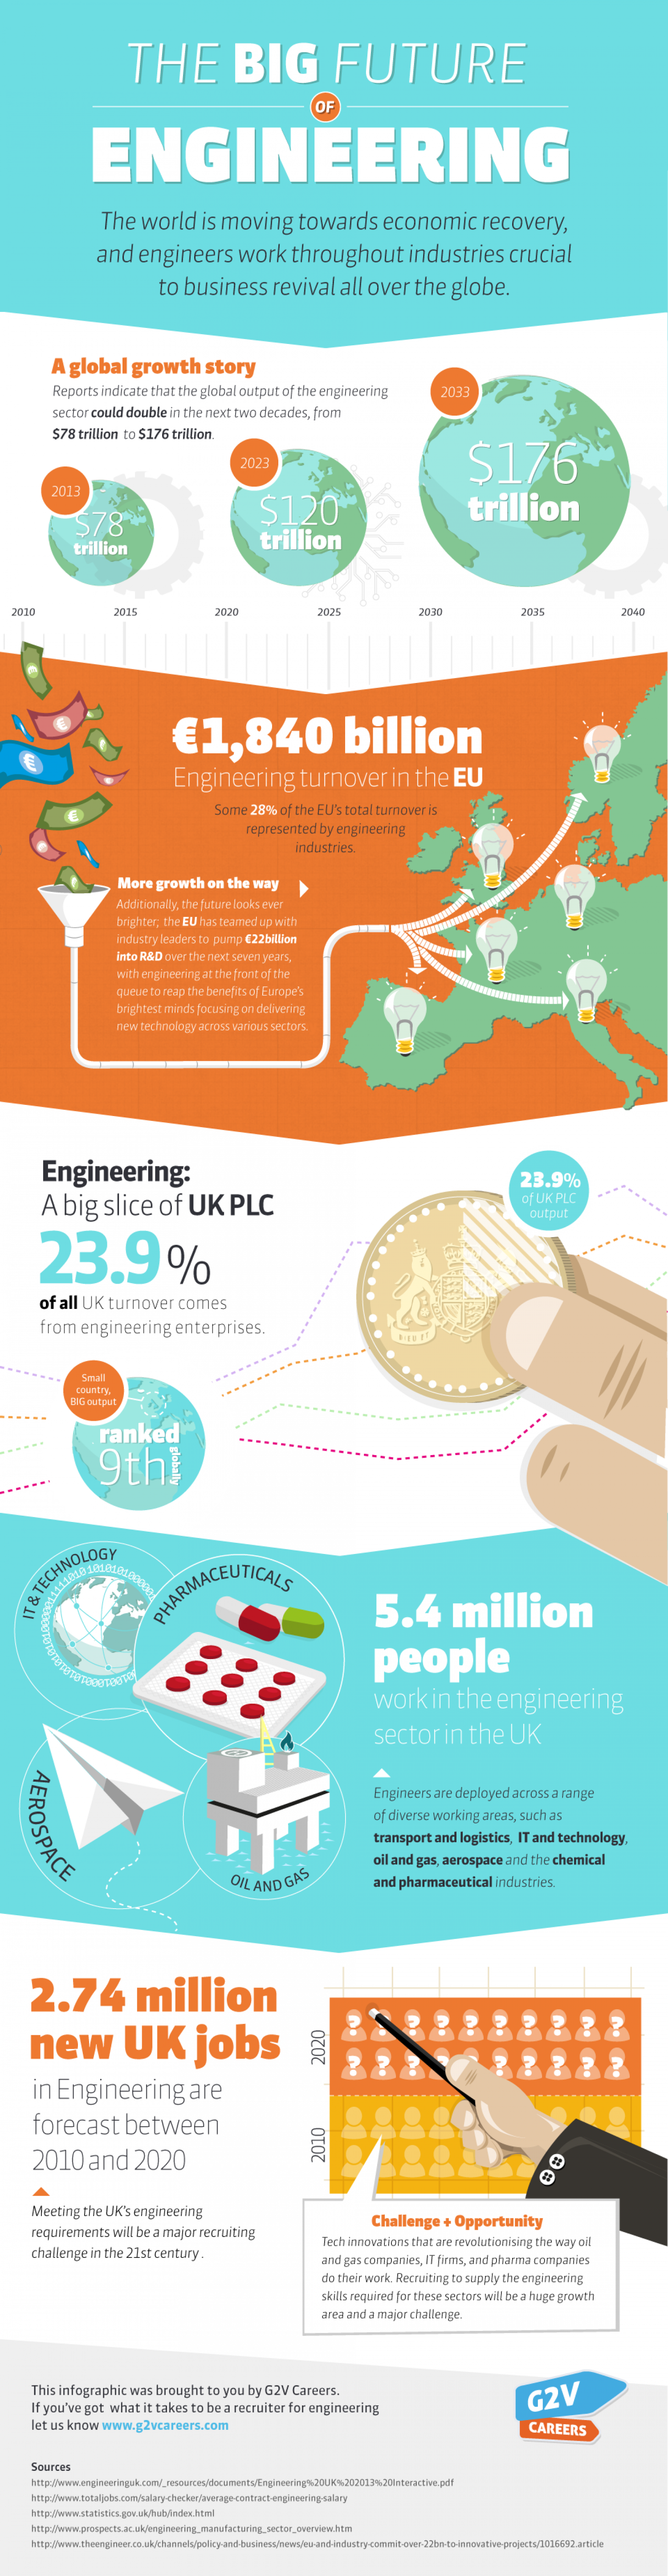 Engineering: What does the future hold? Infographic